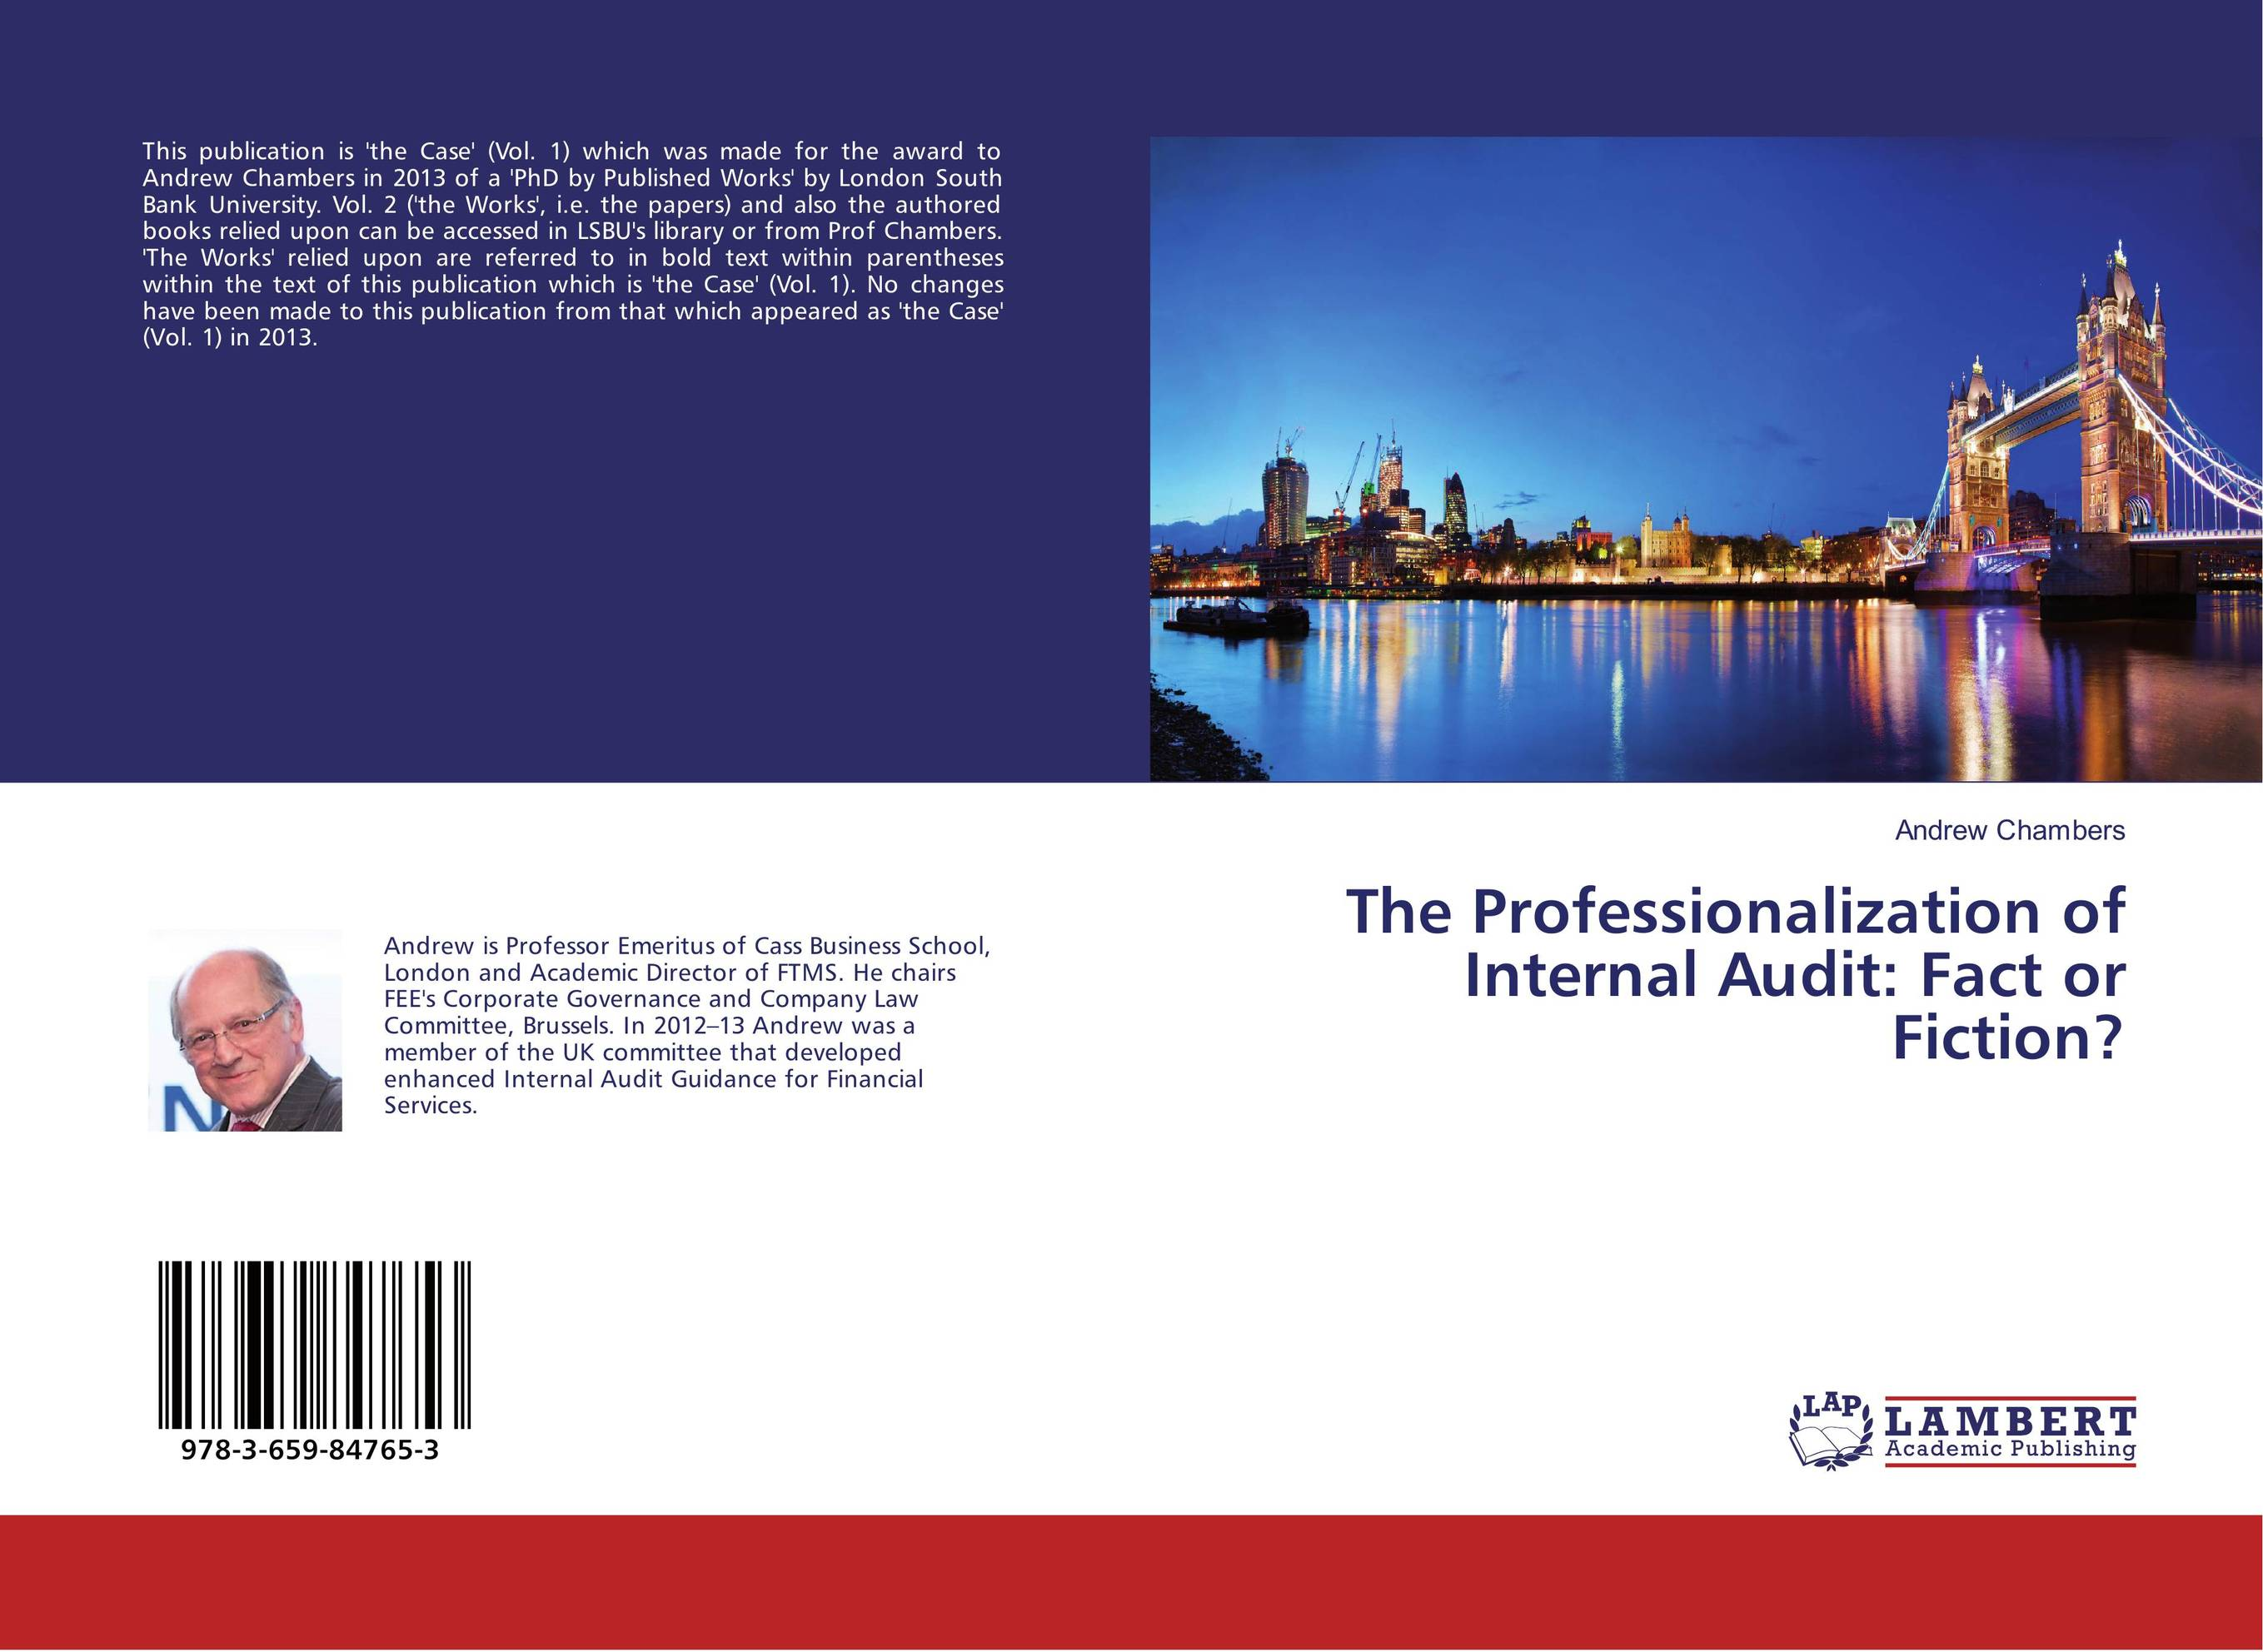 The Professionalization of Internal Audit: Fact or Fiction?